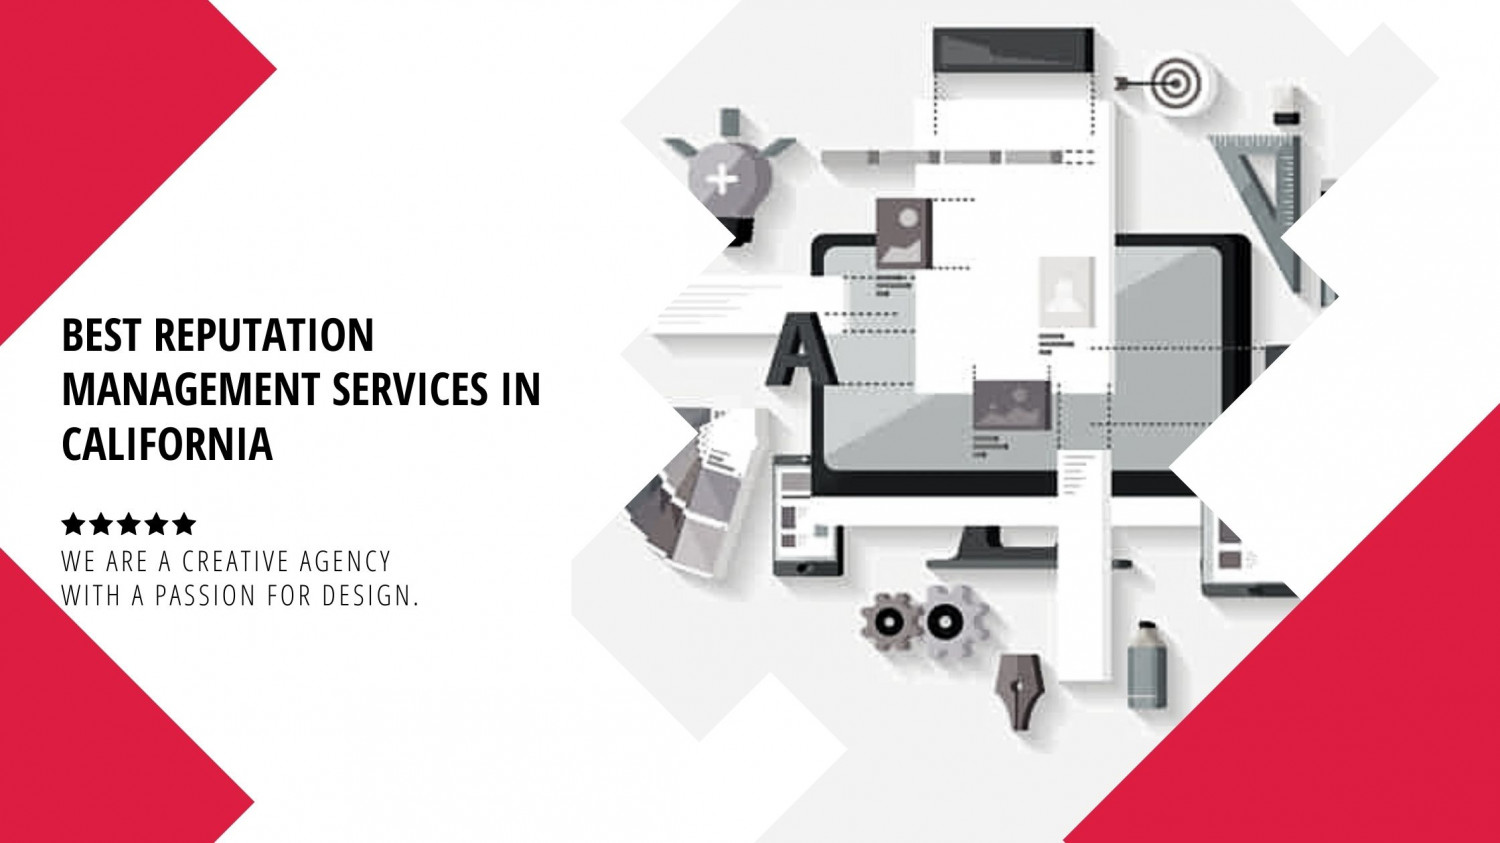 Best Reputation Management Services in California Infographic